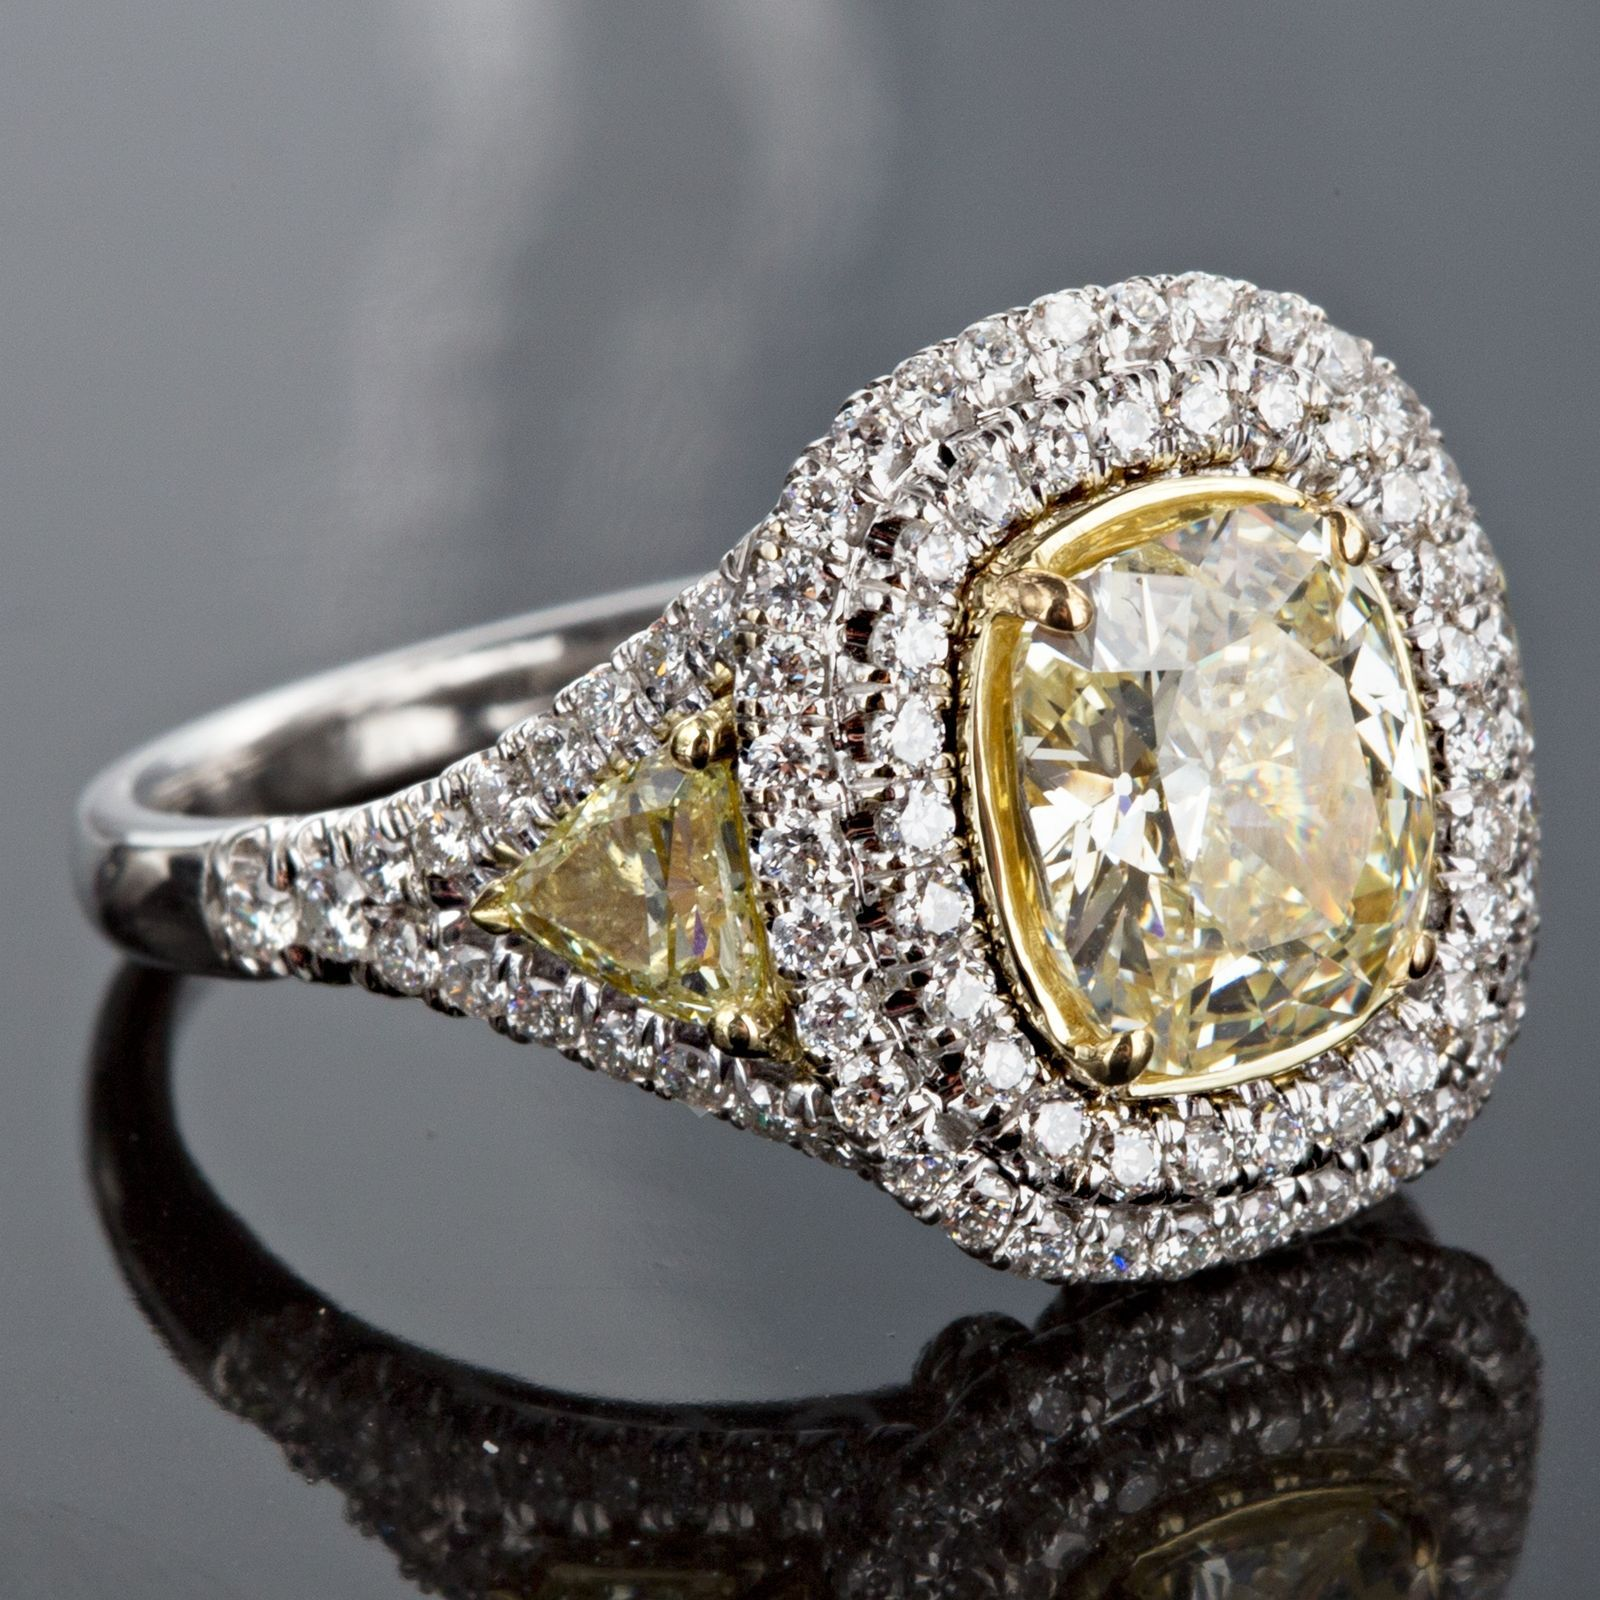 Primary image for 3.43 TCW Cushion Yellow Diamond Engagement Ring Halo Trillion 18k Two Tone Gold